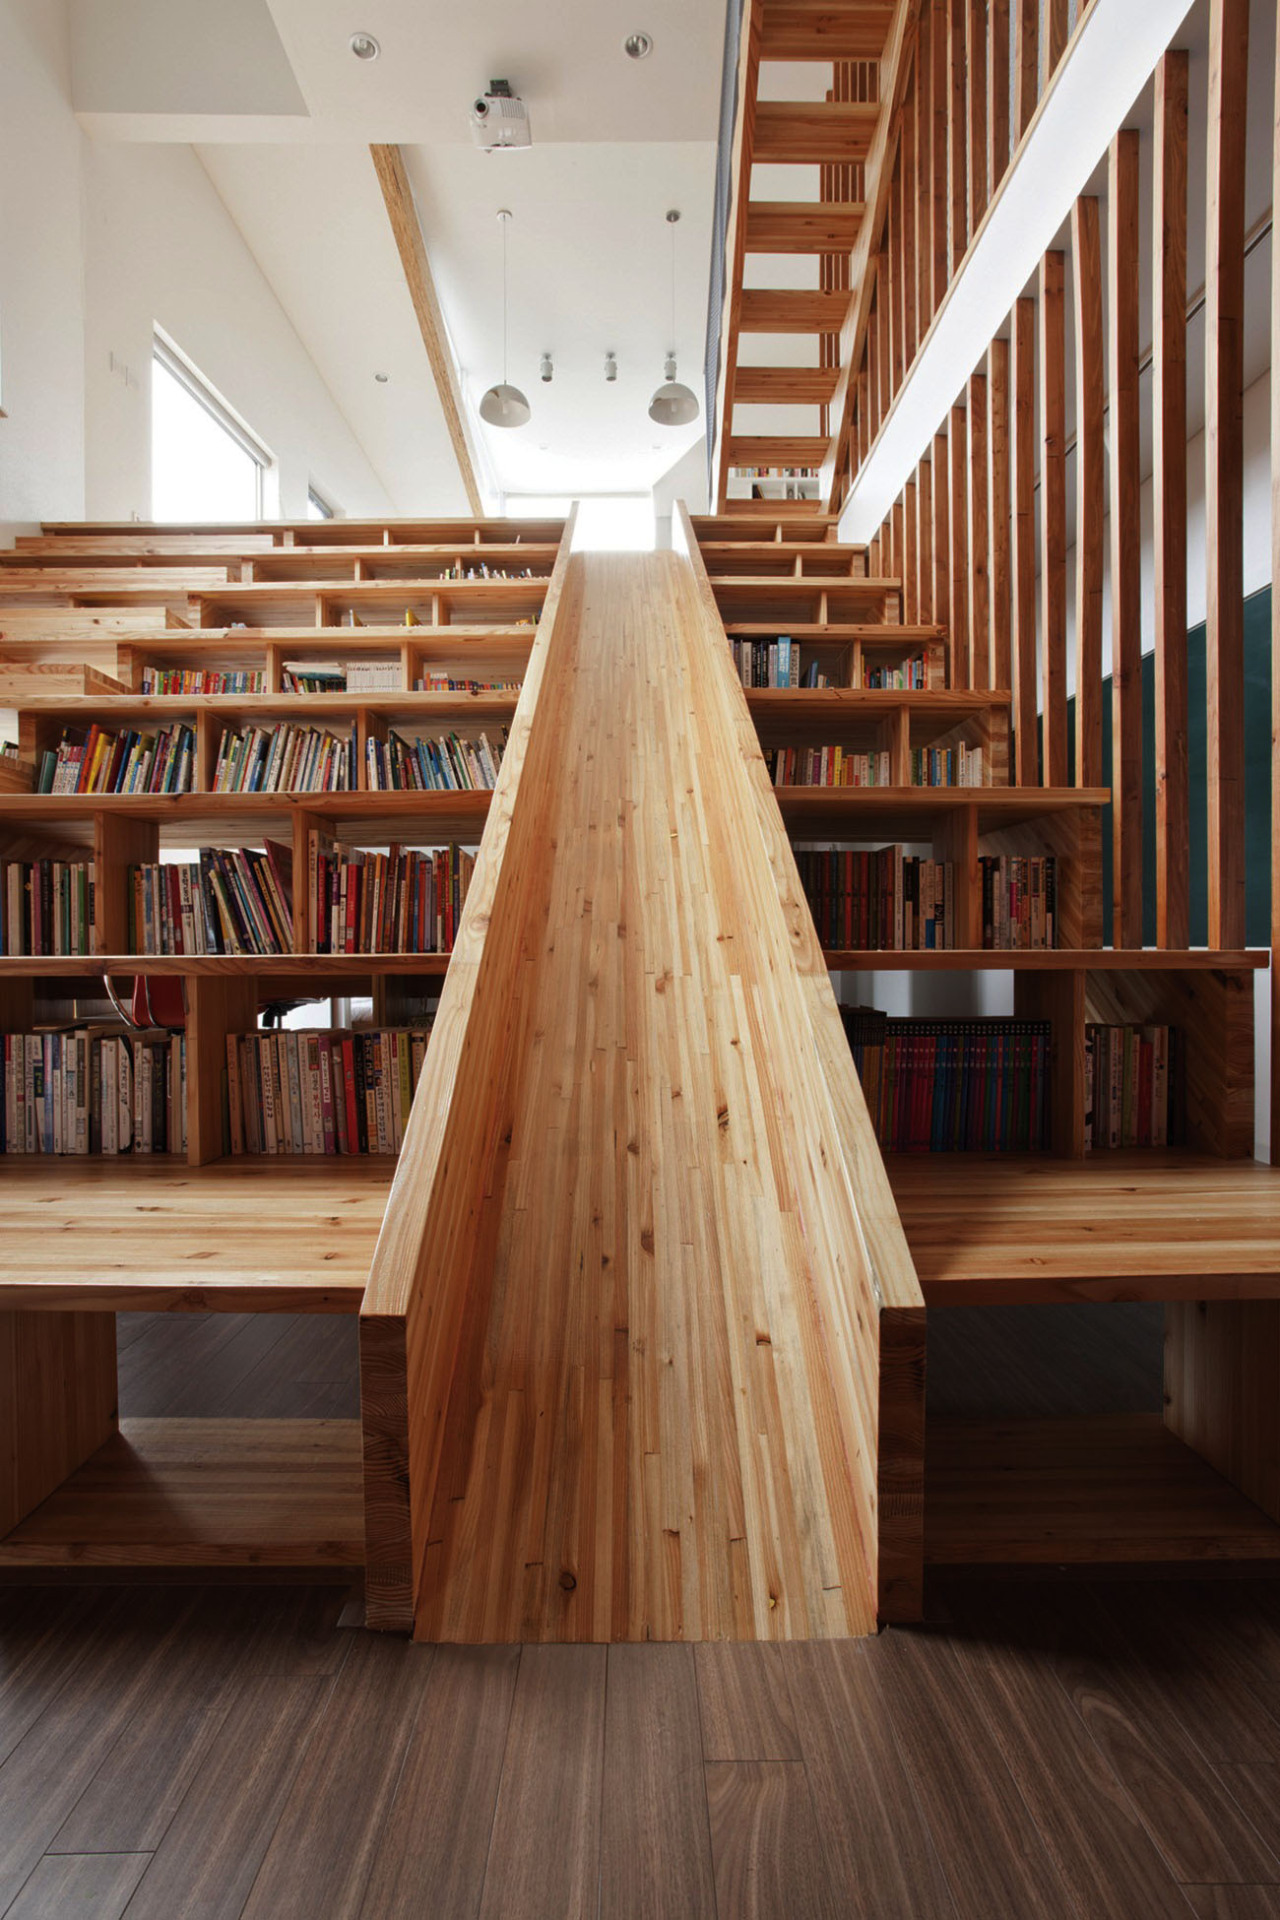 wordpainting:  bookshelfporn:  A Library Slide We love this wooden slide that is slotted into a combined staircase and bookshelf of a house in Chungcheongbuk-do, South Korea, Designed by Moon Hoon. Submitted by Bookshelf Porn reader Jesse Richardson via Colossal.